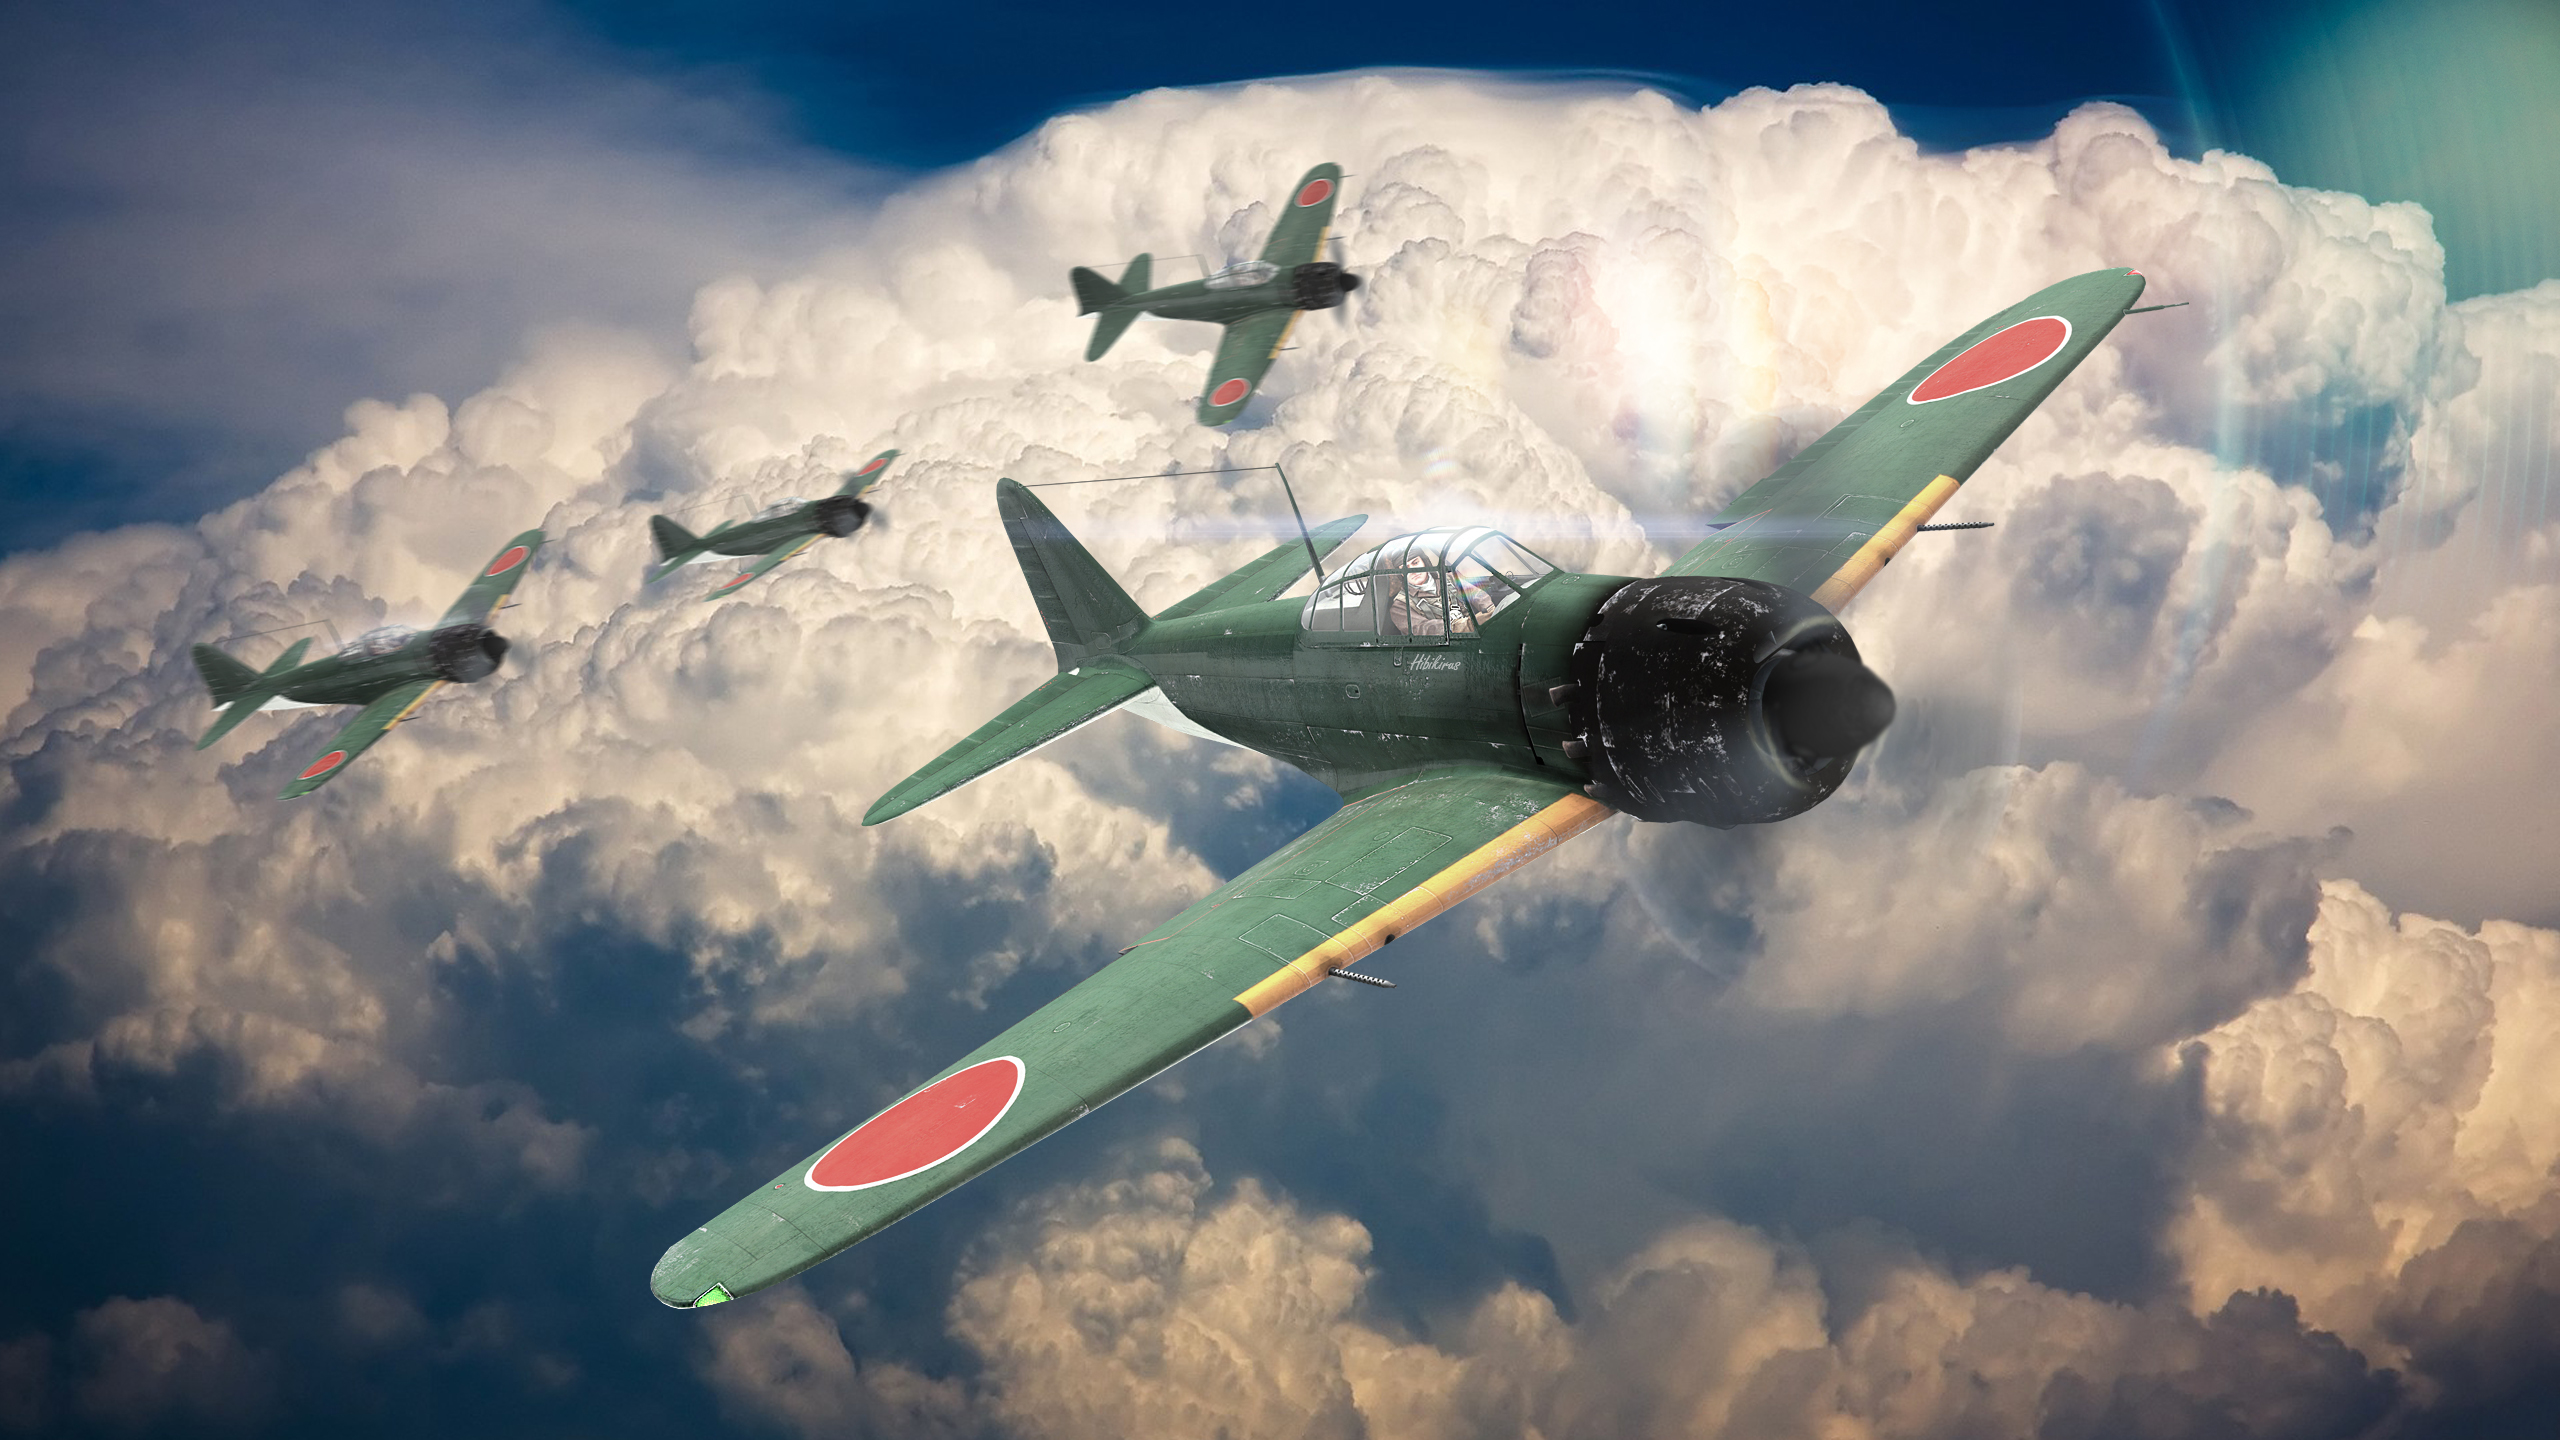 War Thunder Wallpapers, Pictures, Images